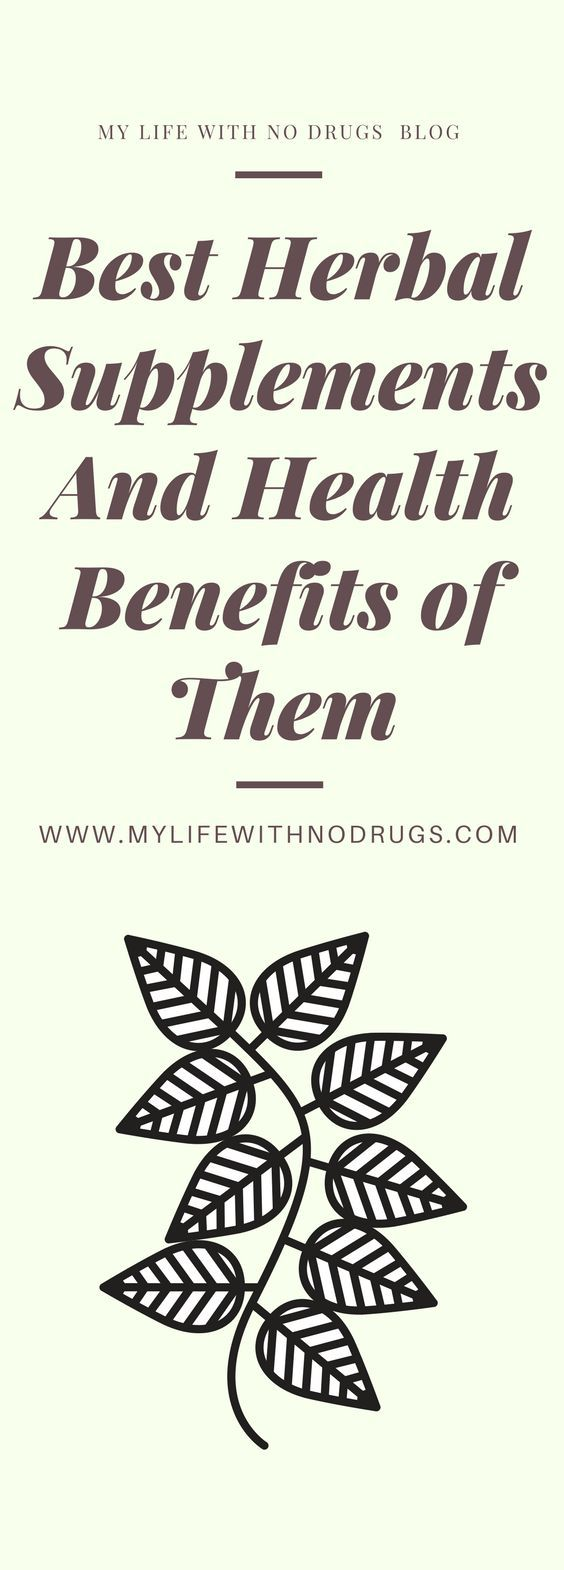 Best Herbal Supplements And Health Benefits of Them